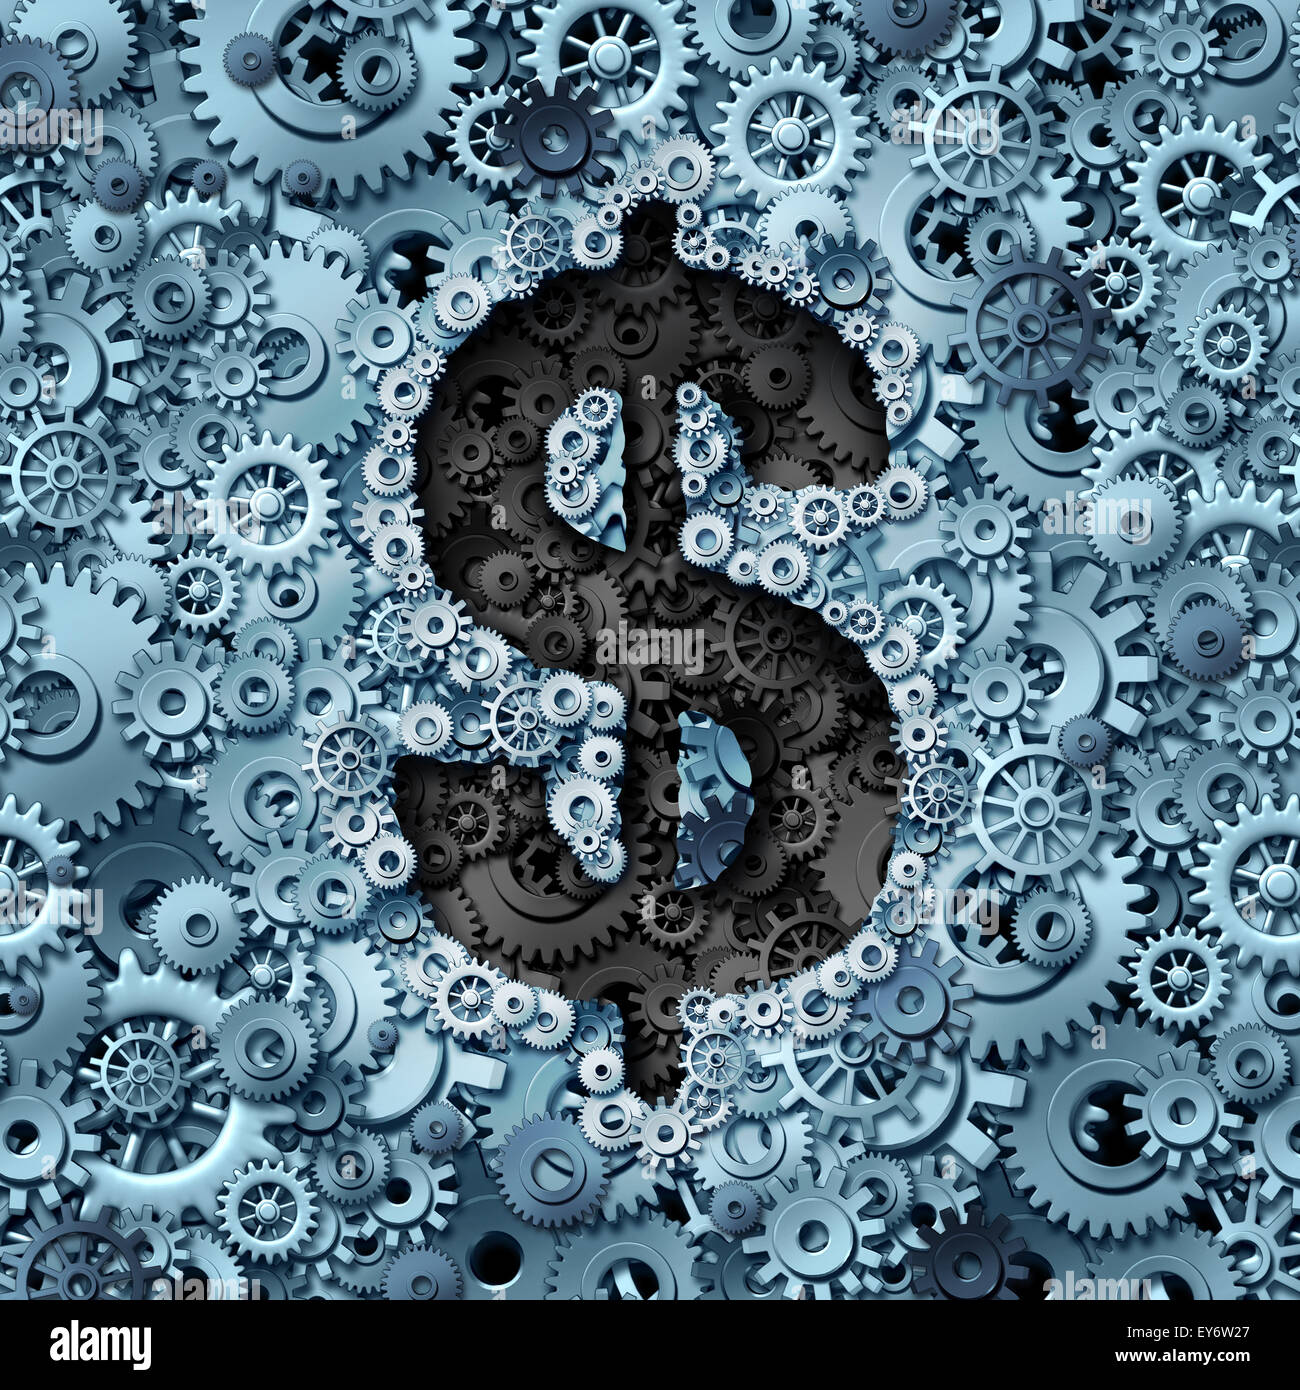 Money machine concept as a financial operations symbol with a dollar sign icon inside a background of gears and - Stock Image